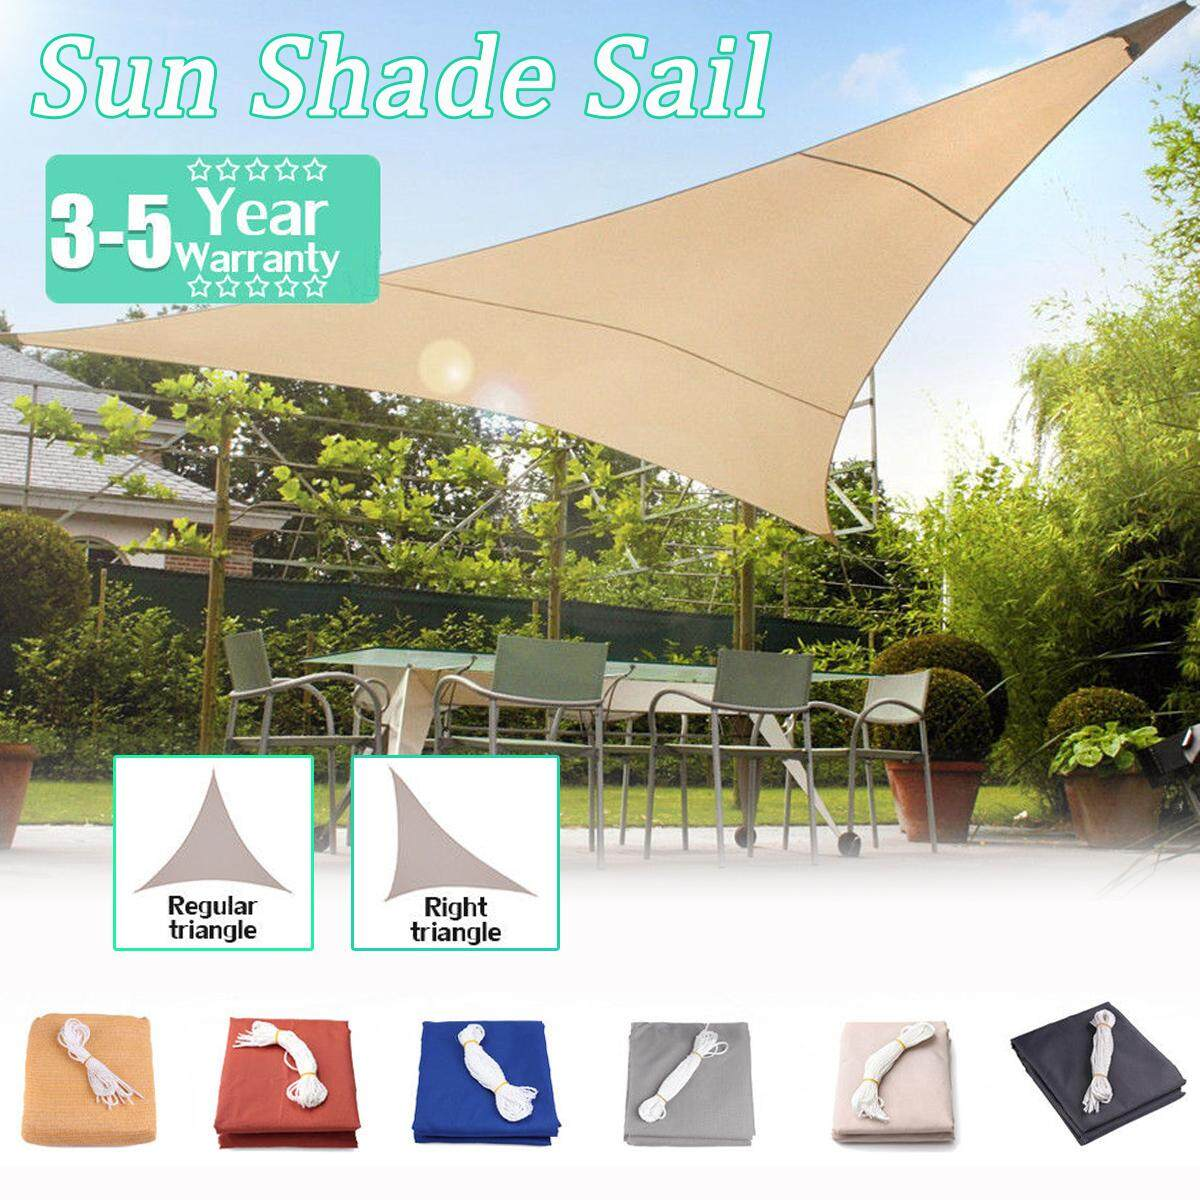 【Free Shipping + Flash Deal】4m x4m x5.7m Light Beige Regular Triangle Right Triangle Extra Heavy Duty Shade Sail Sun Outdoor